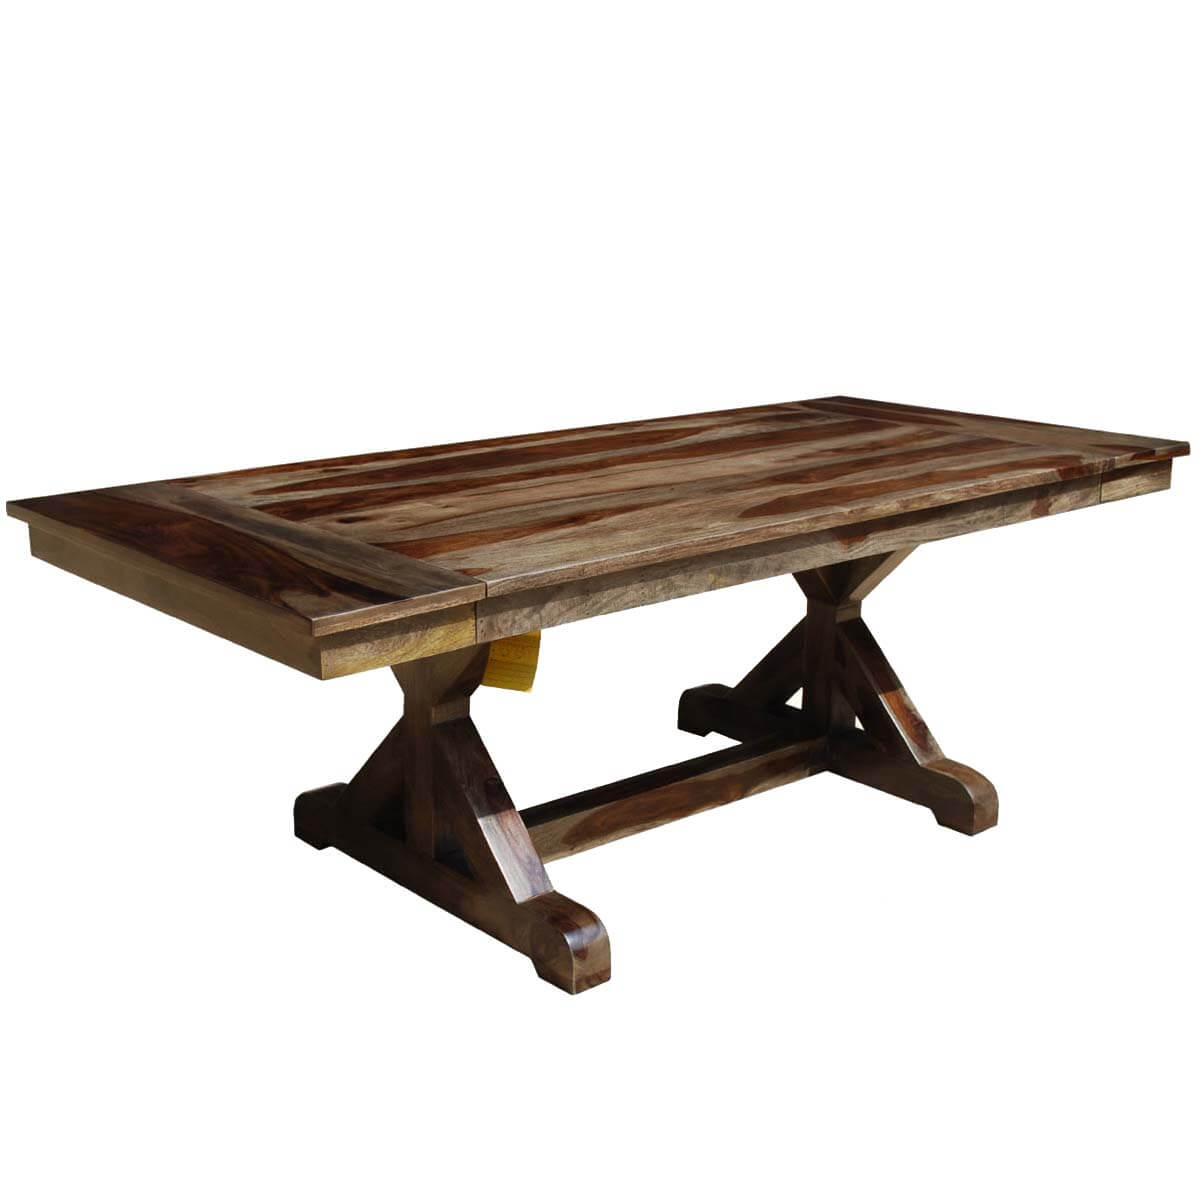 Mckay x base solid wood rustic dining table w extension for Solid wood dining table